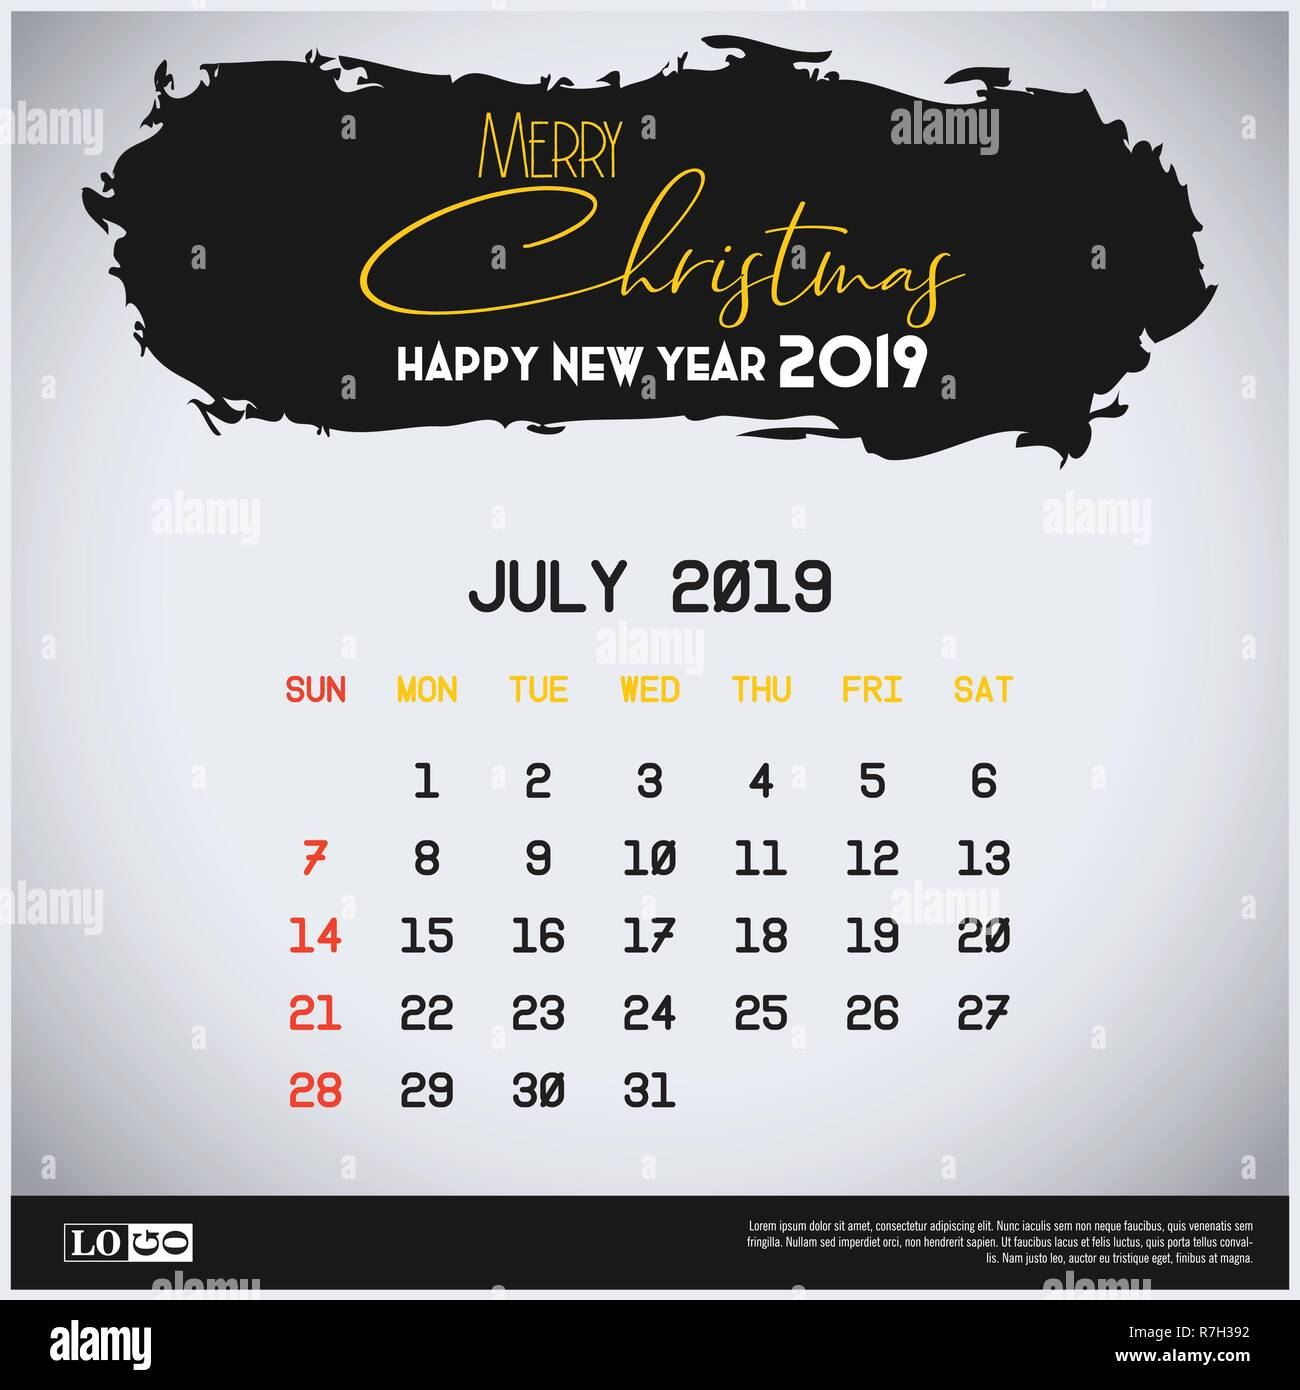 Calendario Julio 2019 Vector.July 2019 New Year Calendar Template Brush Stroke Header